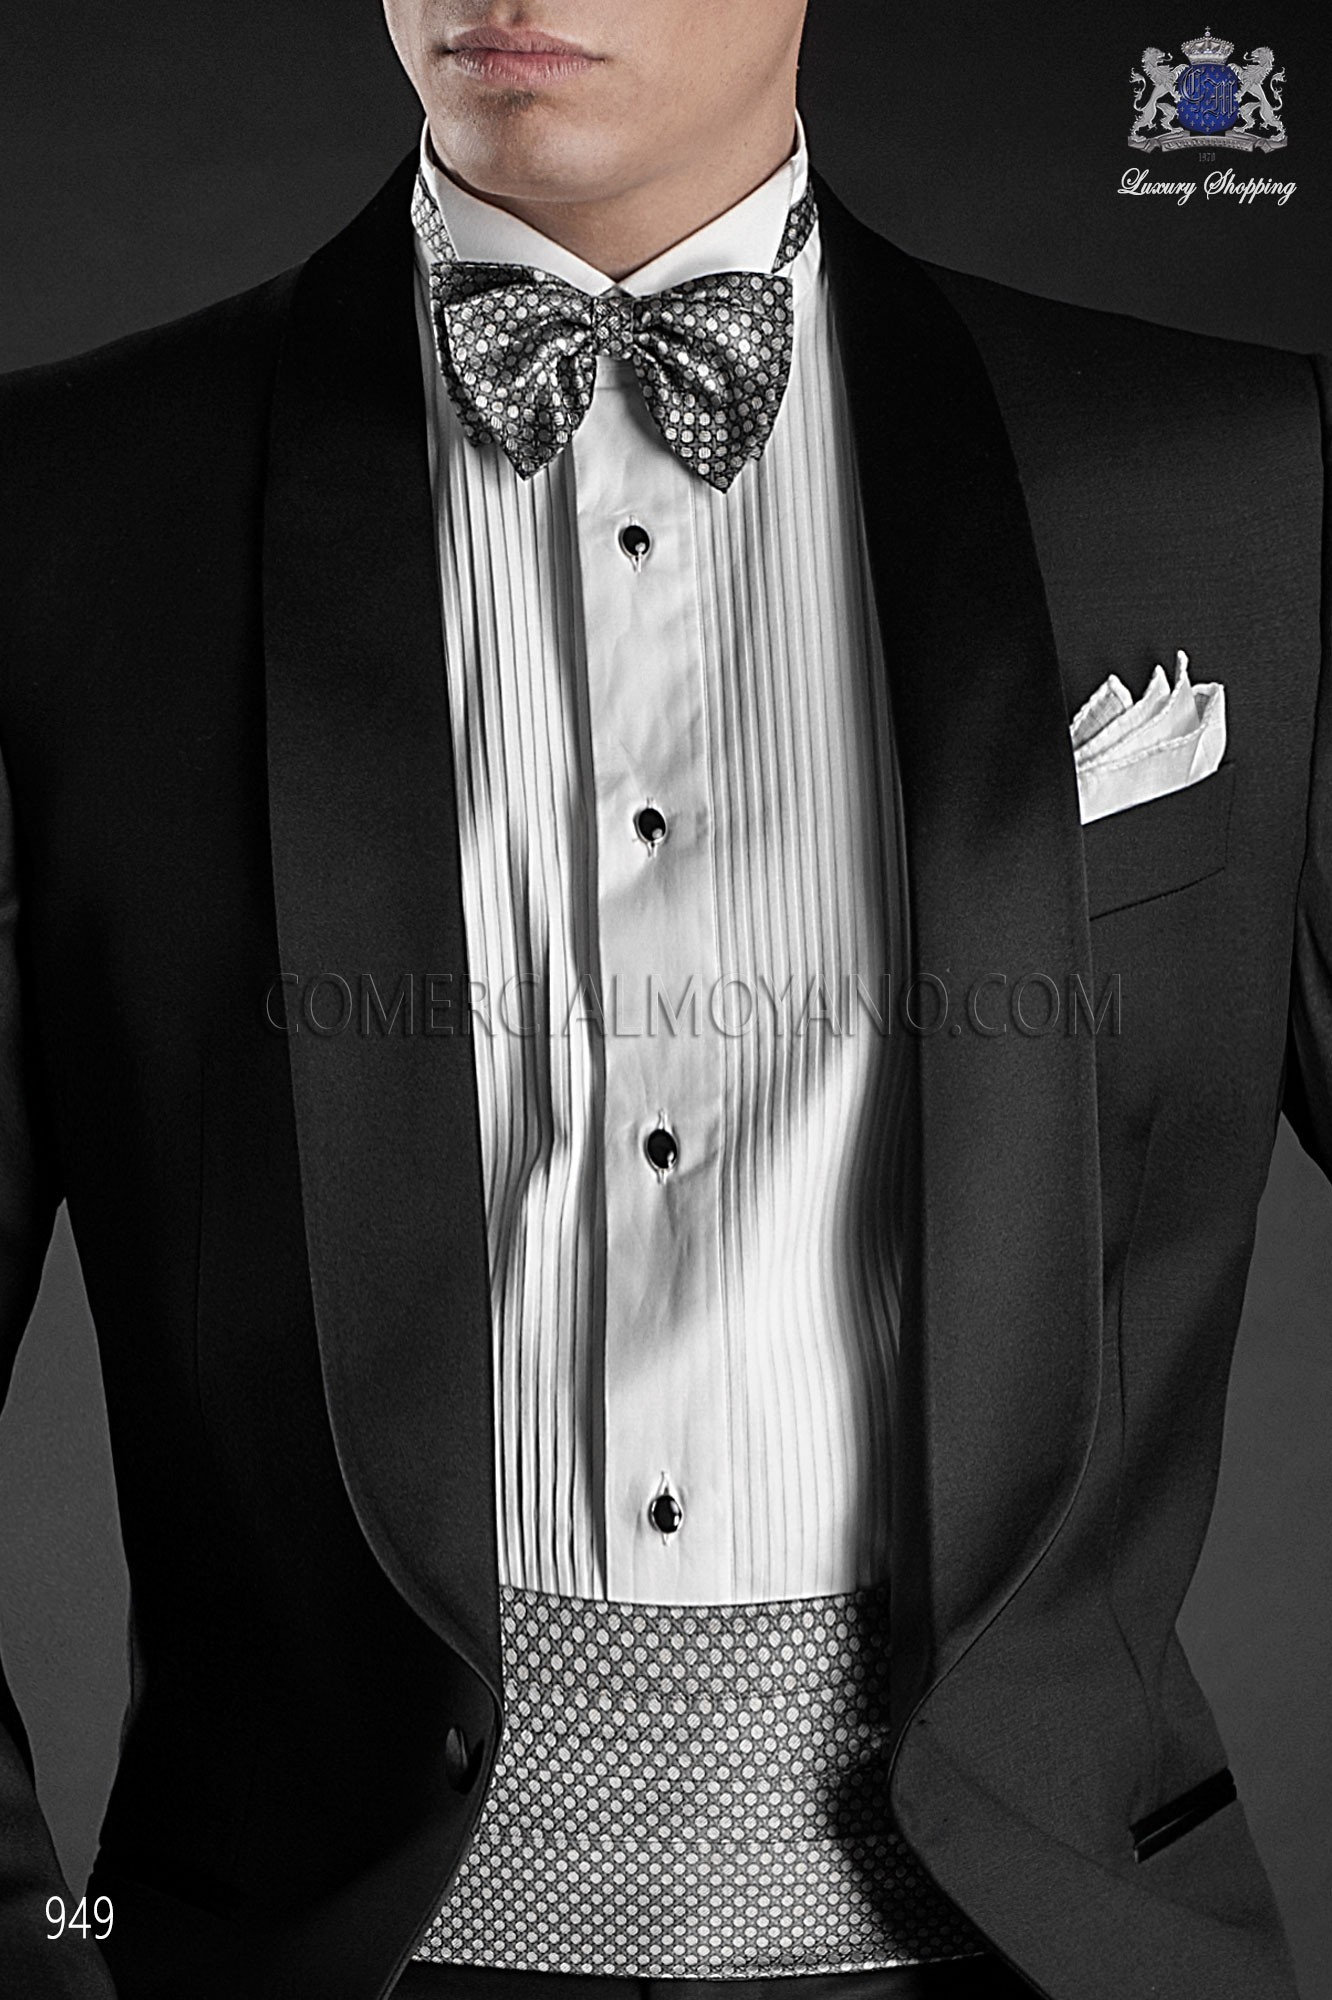 Italian blacktie black men wedding suit, model: 949 Ottavio Nuccio Gala Black Tie Collection